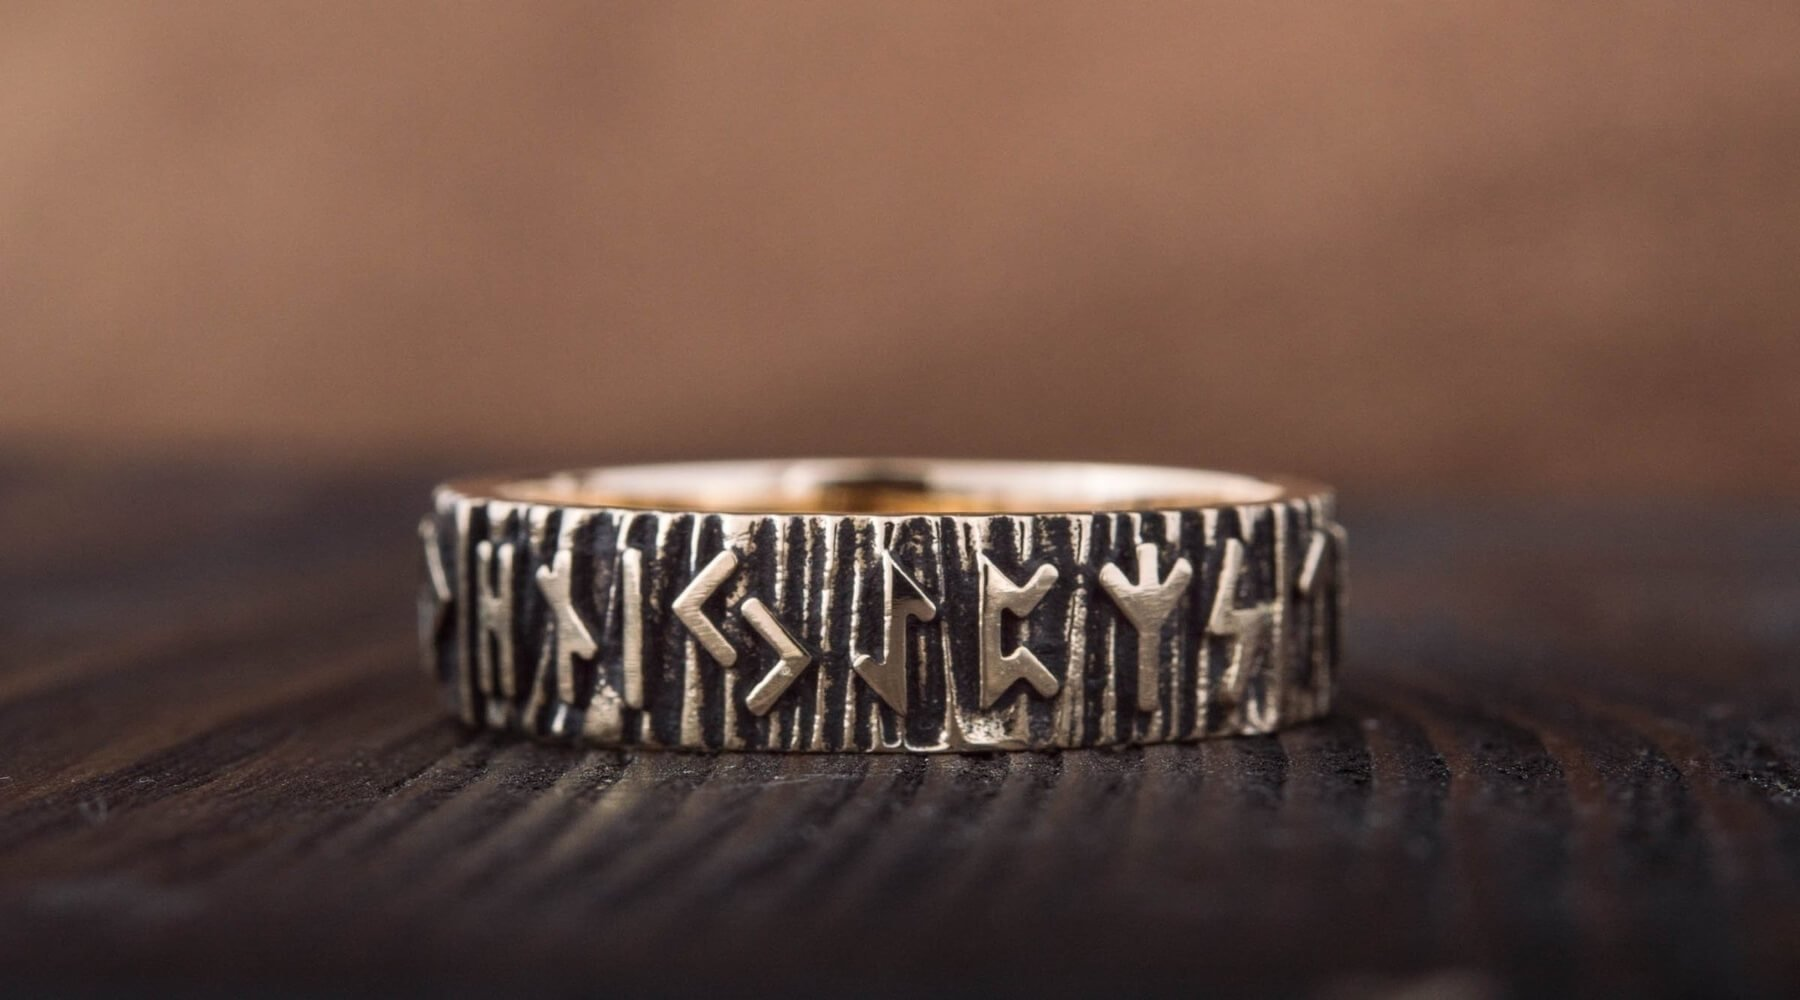 Viking wedding ring on a wooden background